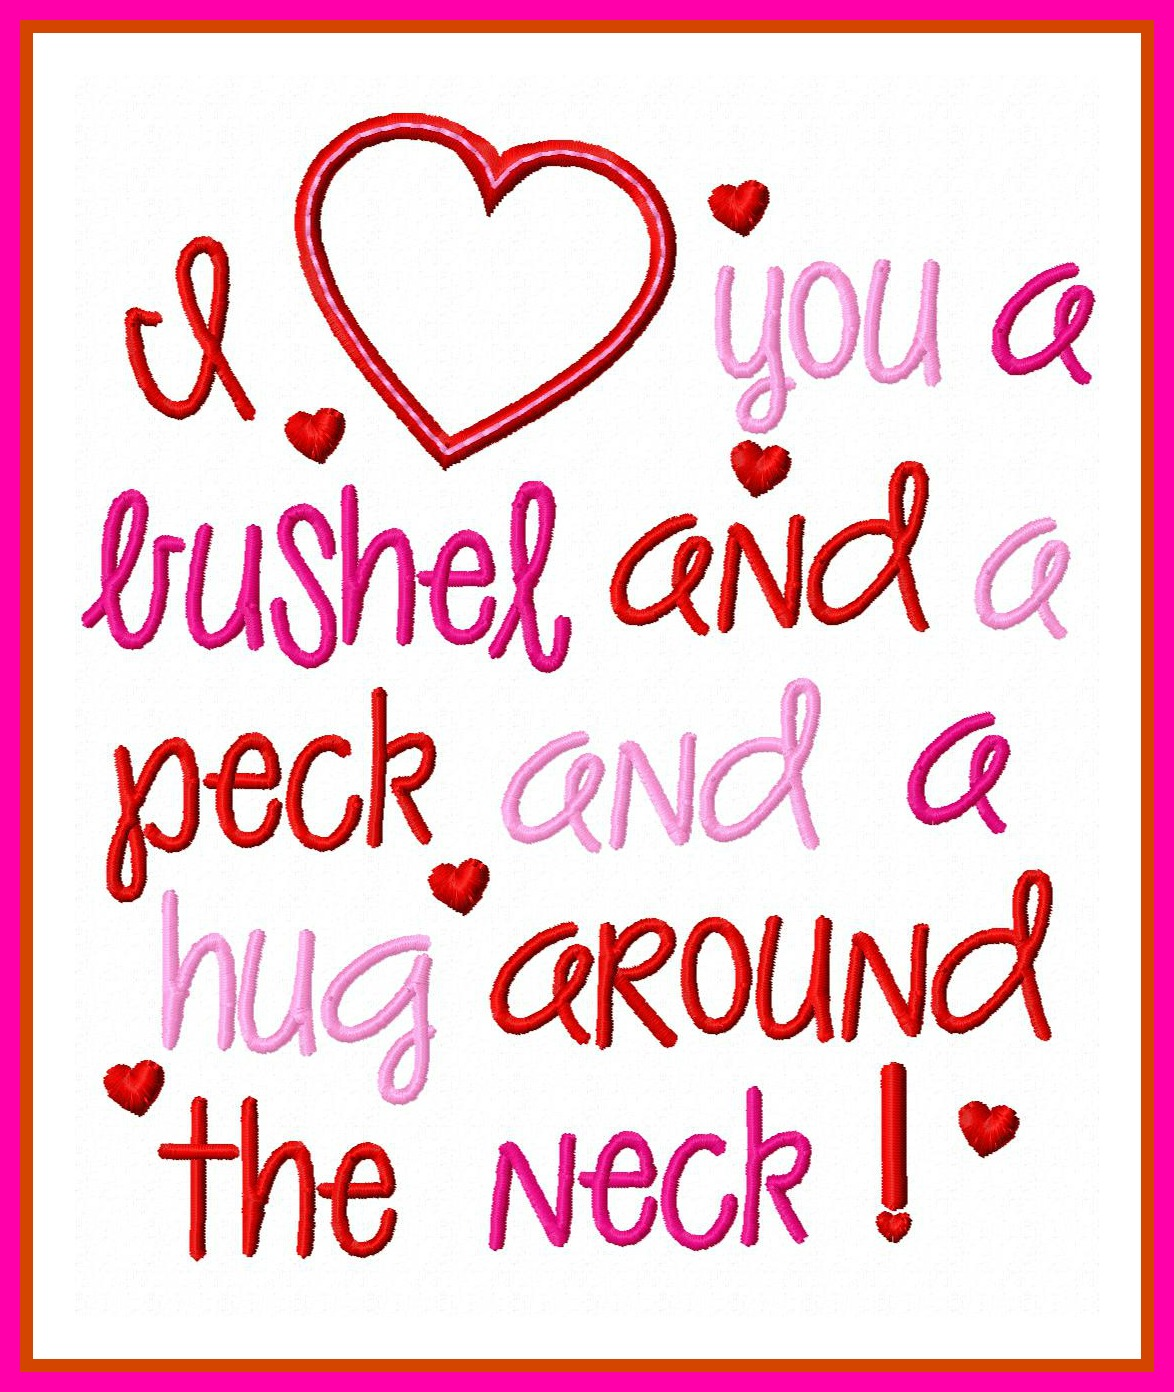 Love you a bushel and a peck saying